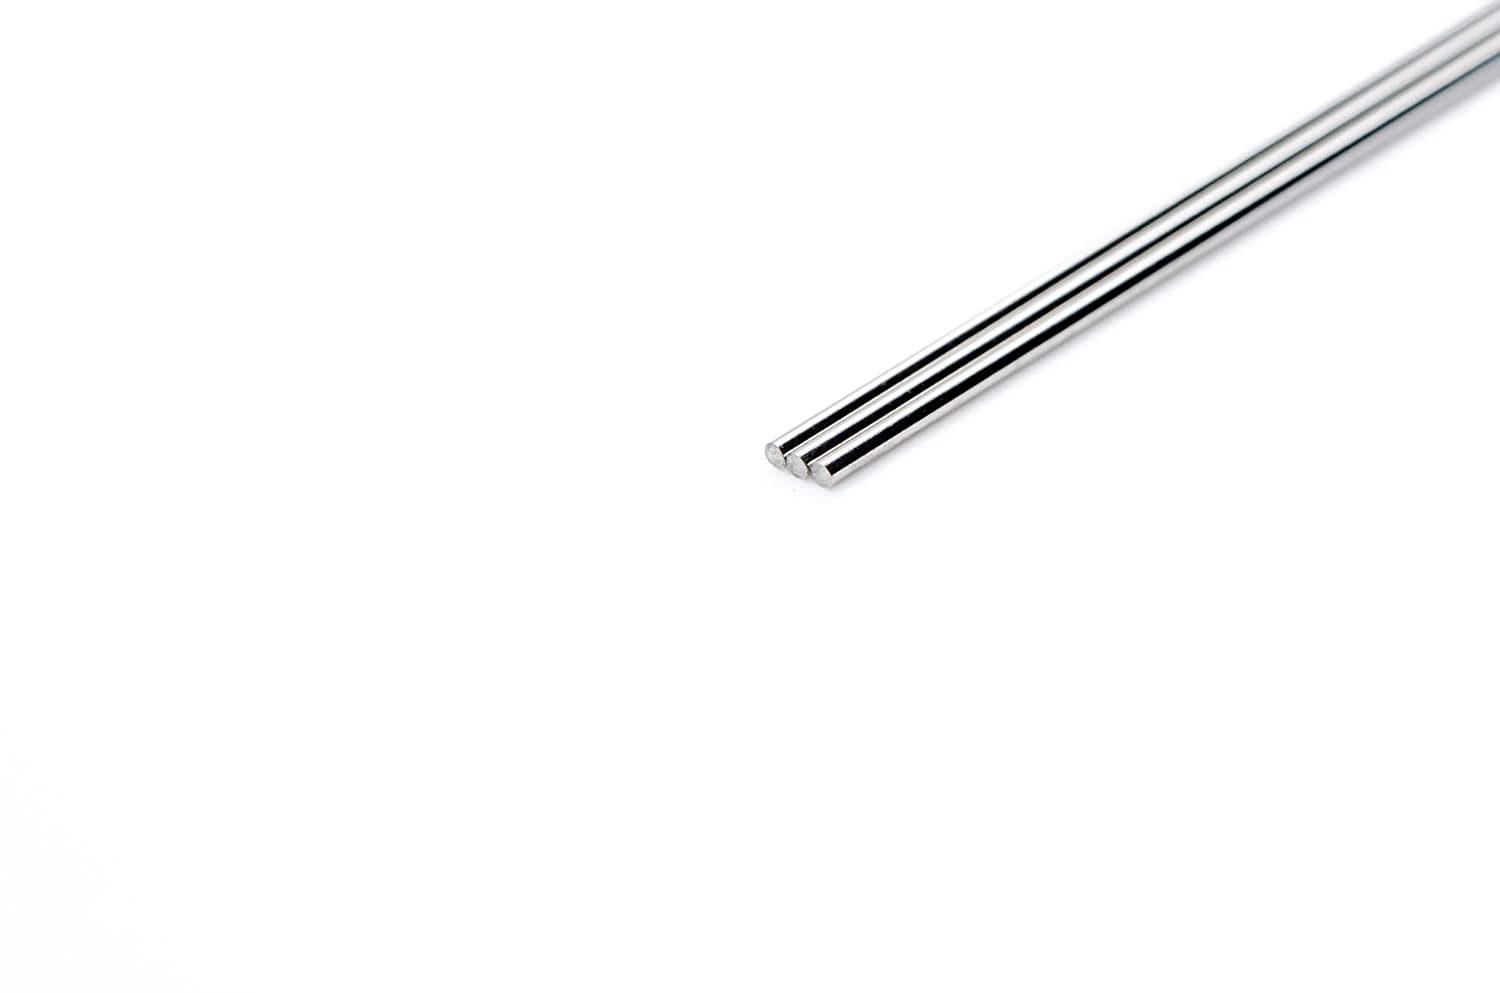 WYTCH316-132 316LVM Stainless Steel Wire, Bright Finish, VAR (Vacuum Arc Remelted), Spring Temper, Precision Tolerance, ASTM A313/ASTM F138, 0.035 Diameter, 73 Length (Pack of 5)